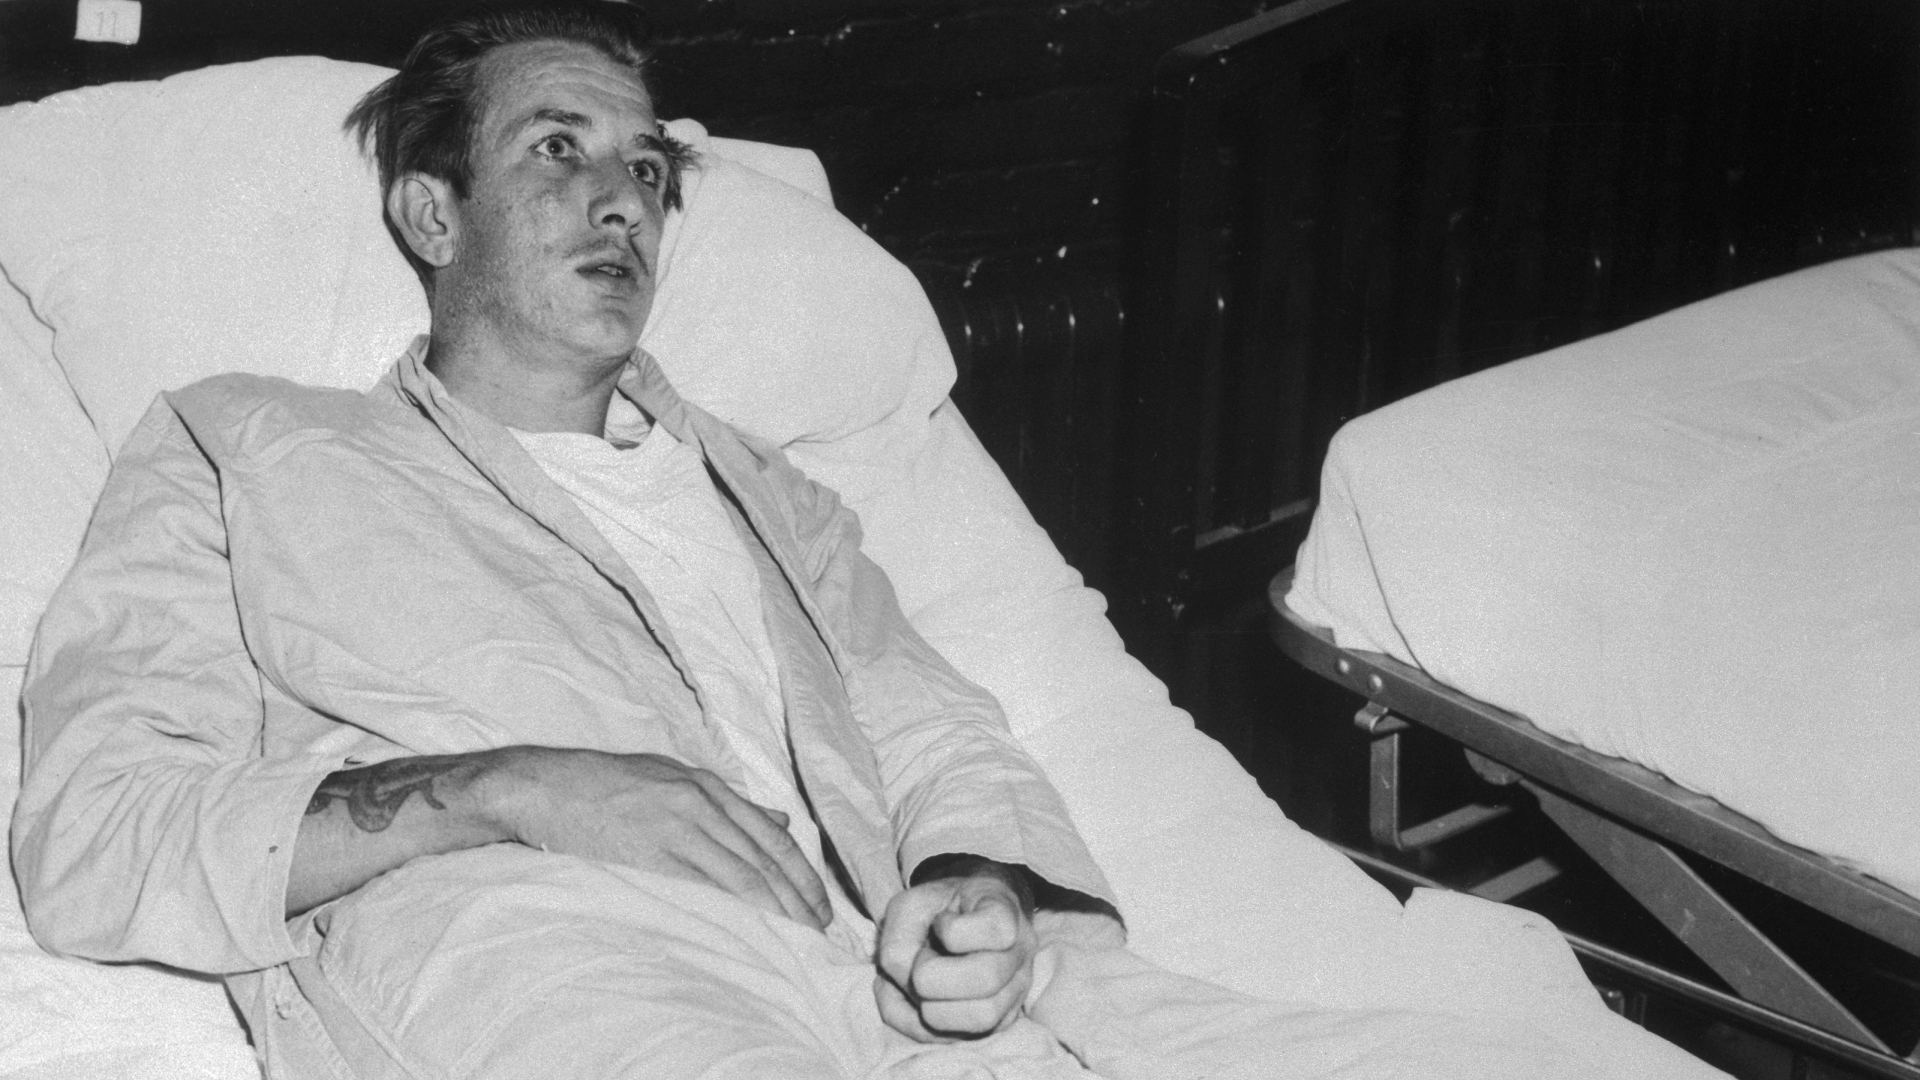 Richard Speck, accused slayer of eight student nurses. (Credit: Bettmann Archive/Getty Images)